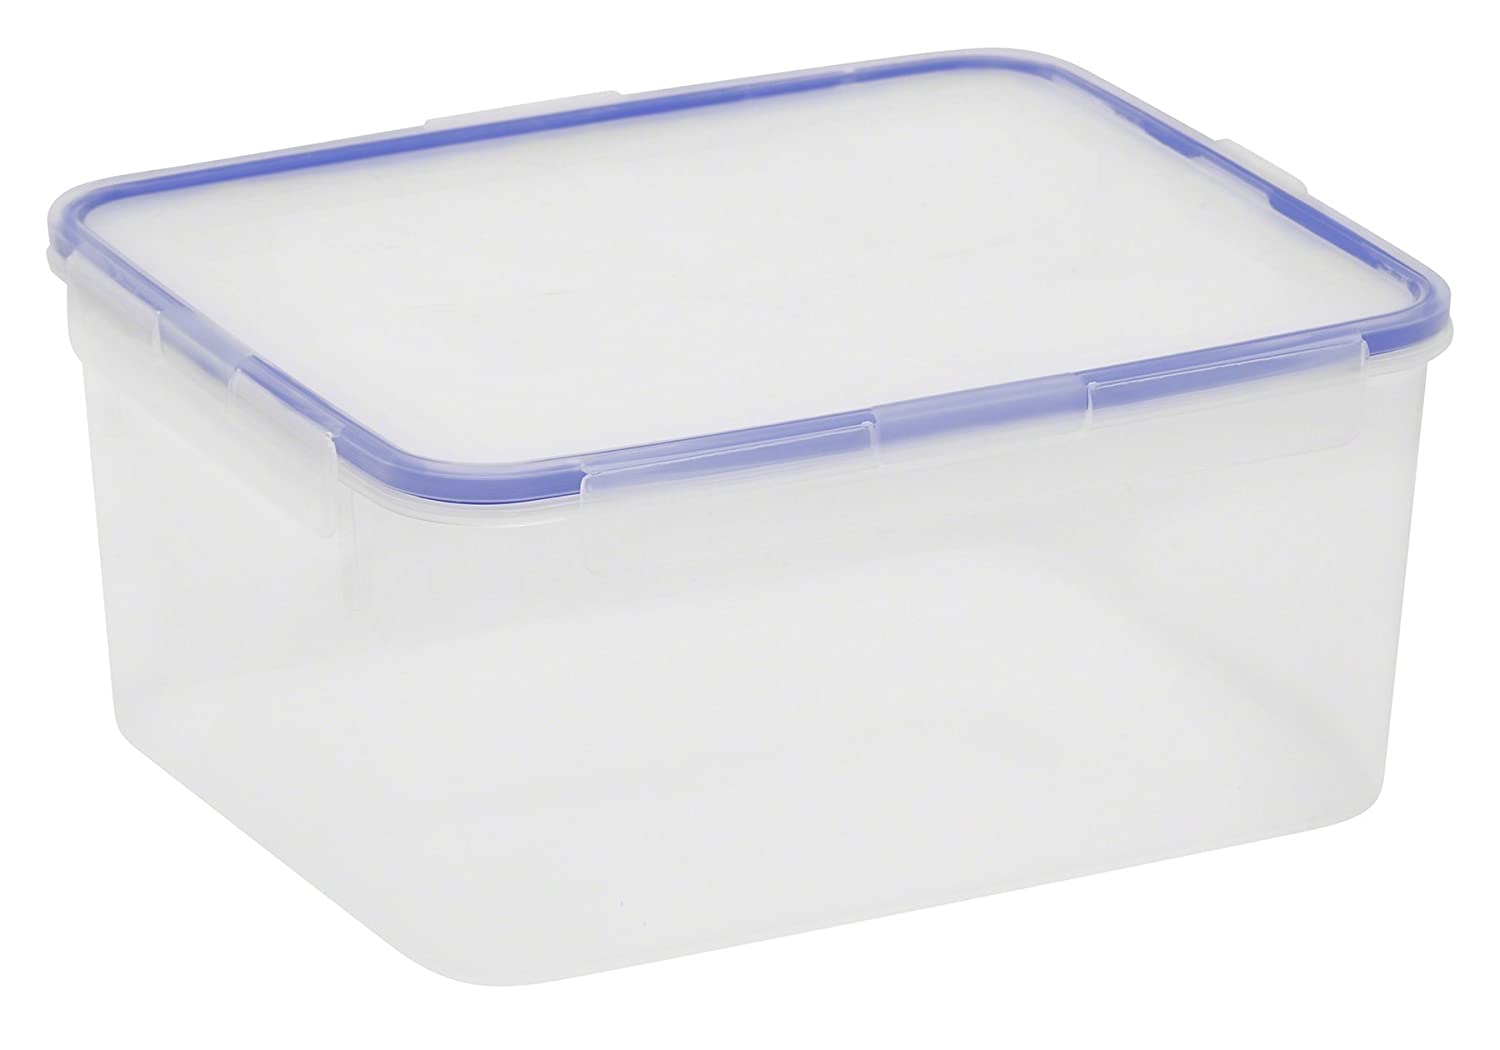 Snapware Airtight 18.5-Cup Rectangular Food Storage Container